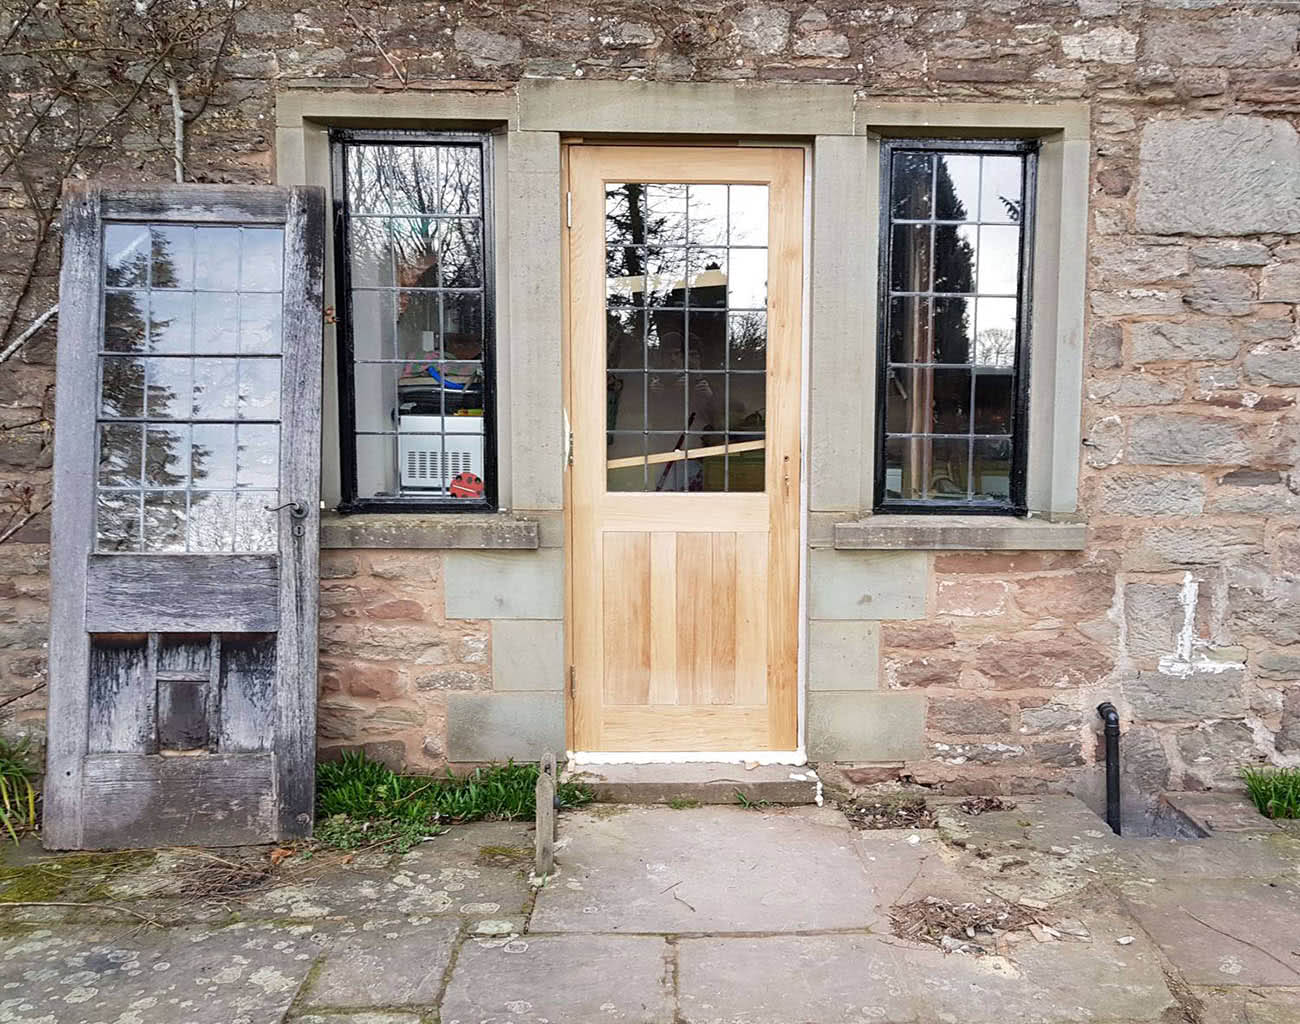 Newly fitted bespoke oak door with leaded glass panes side by side comparison with the old door